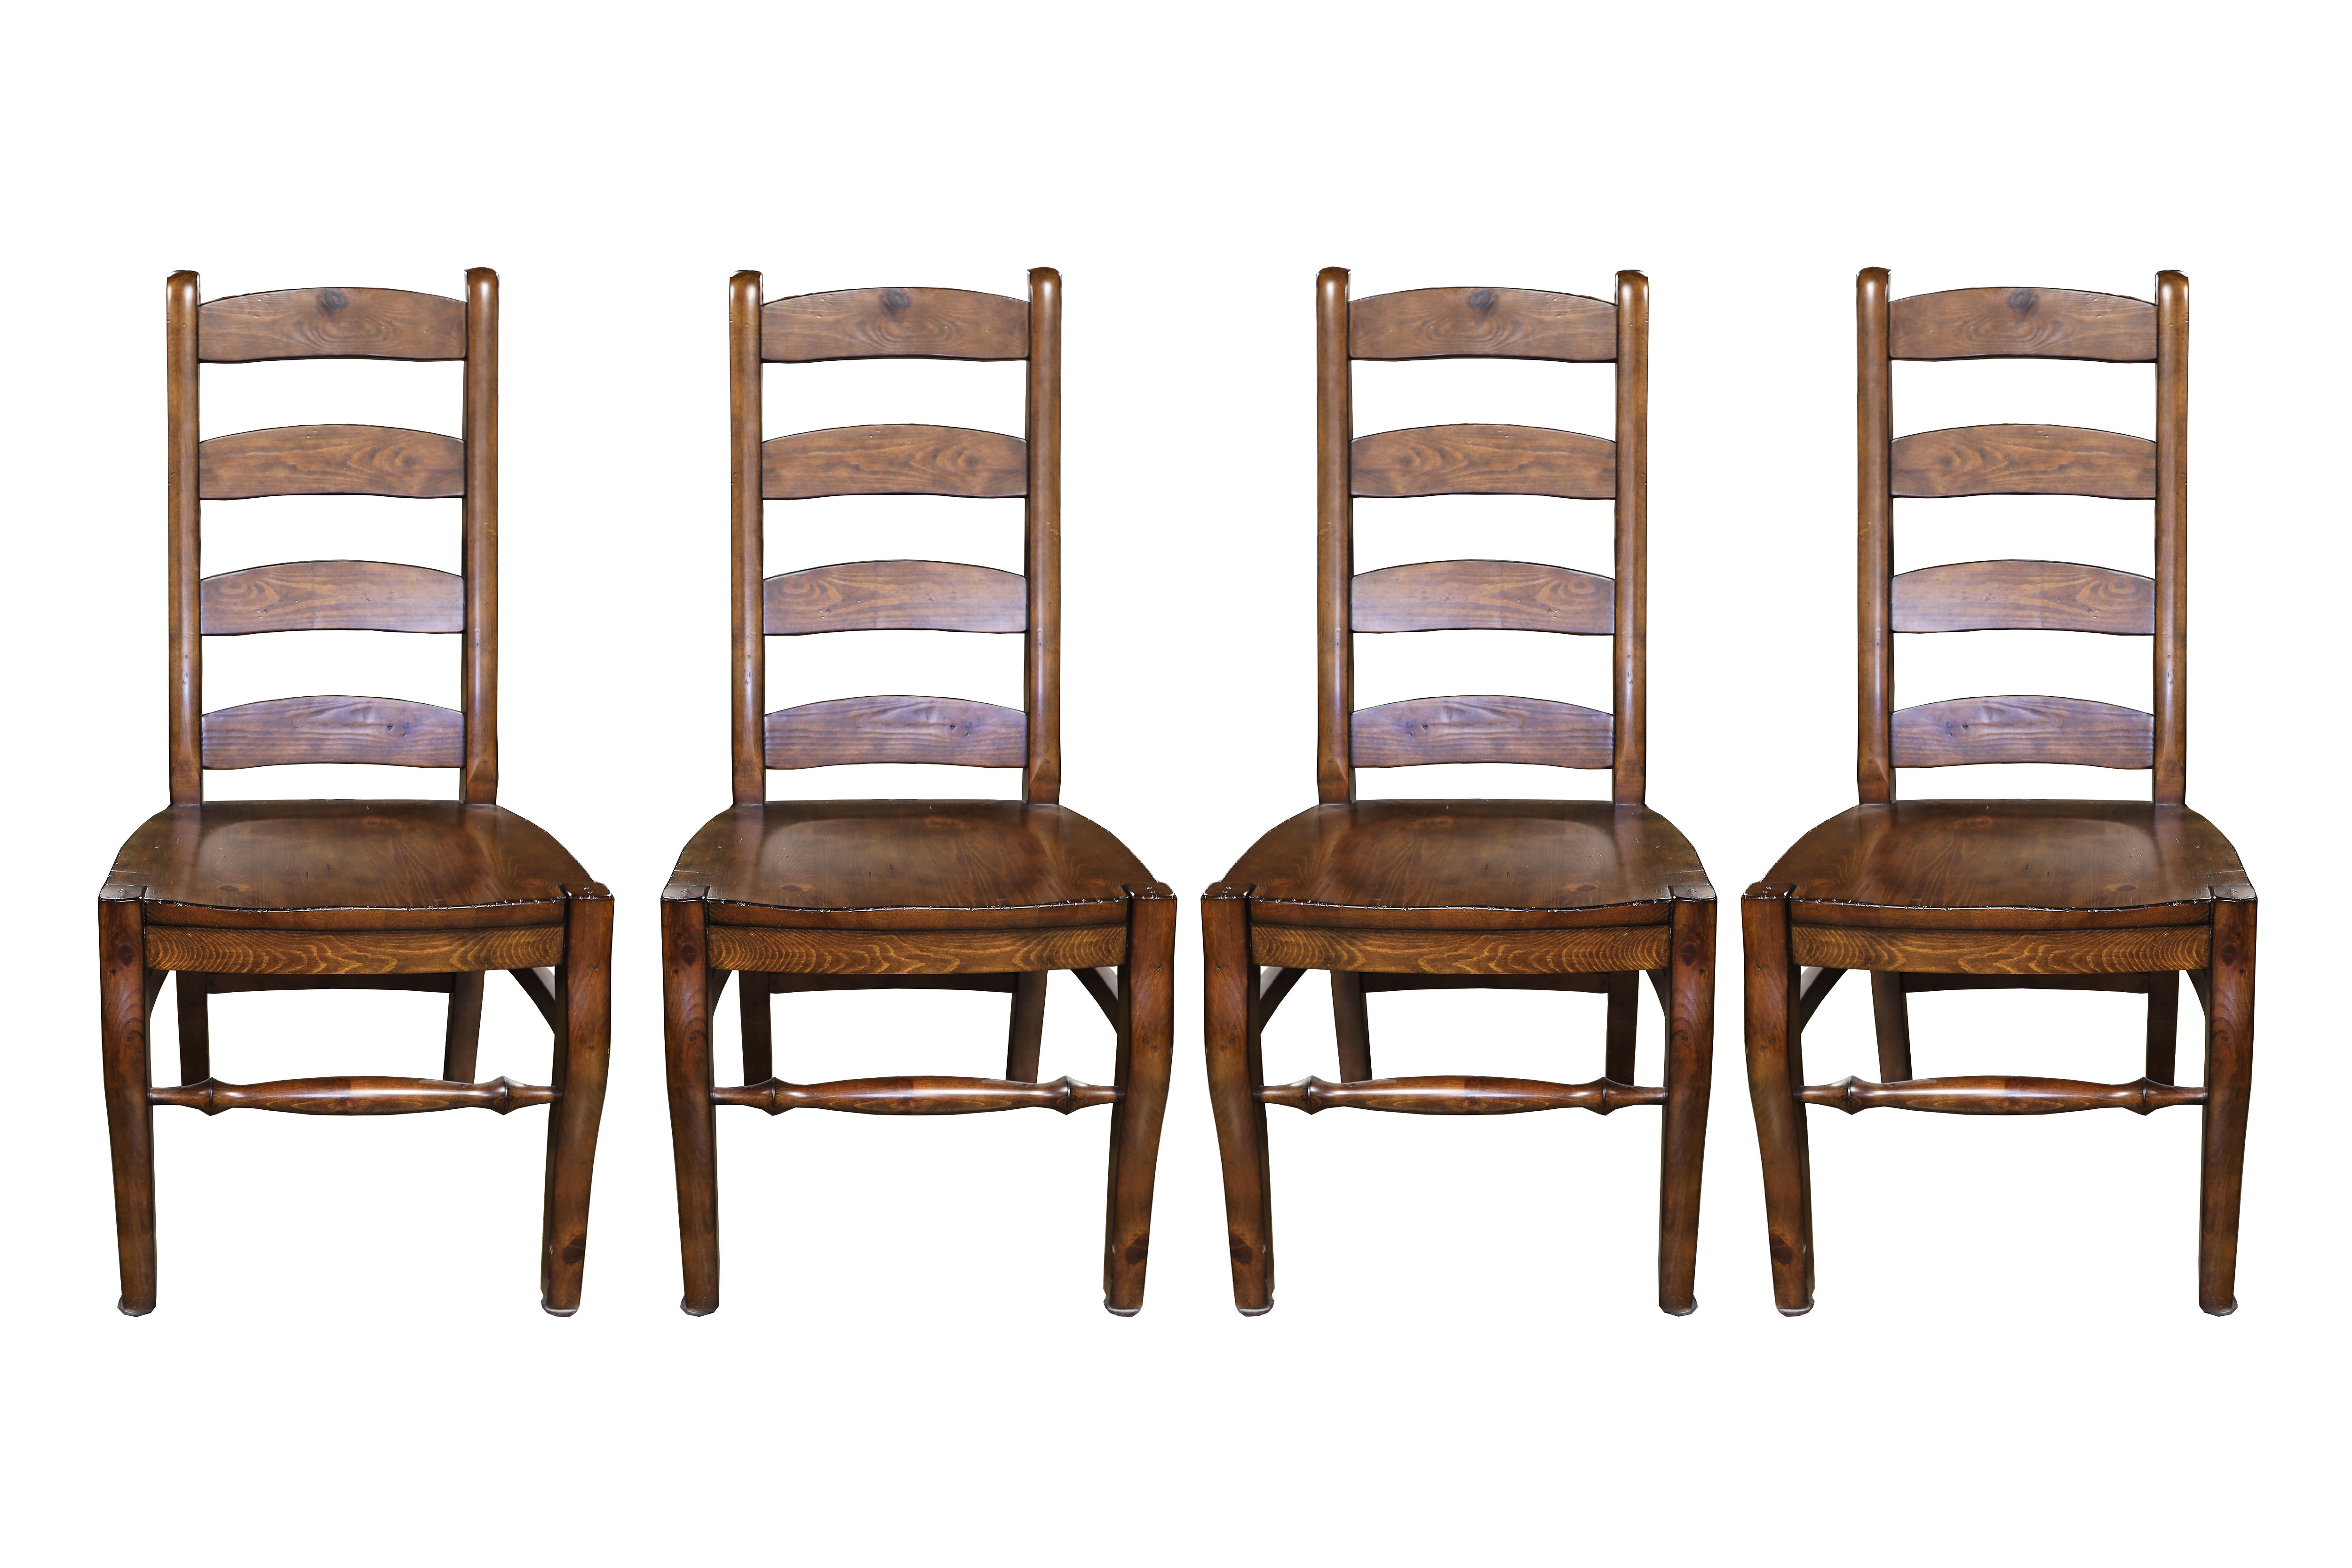 Pottery Barn Dining Chairs (RT: $800)